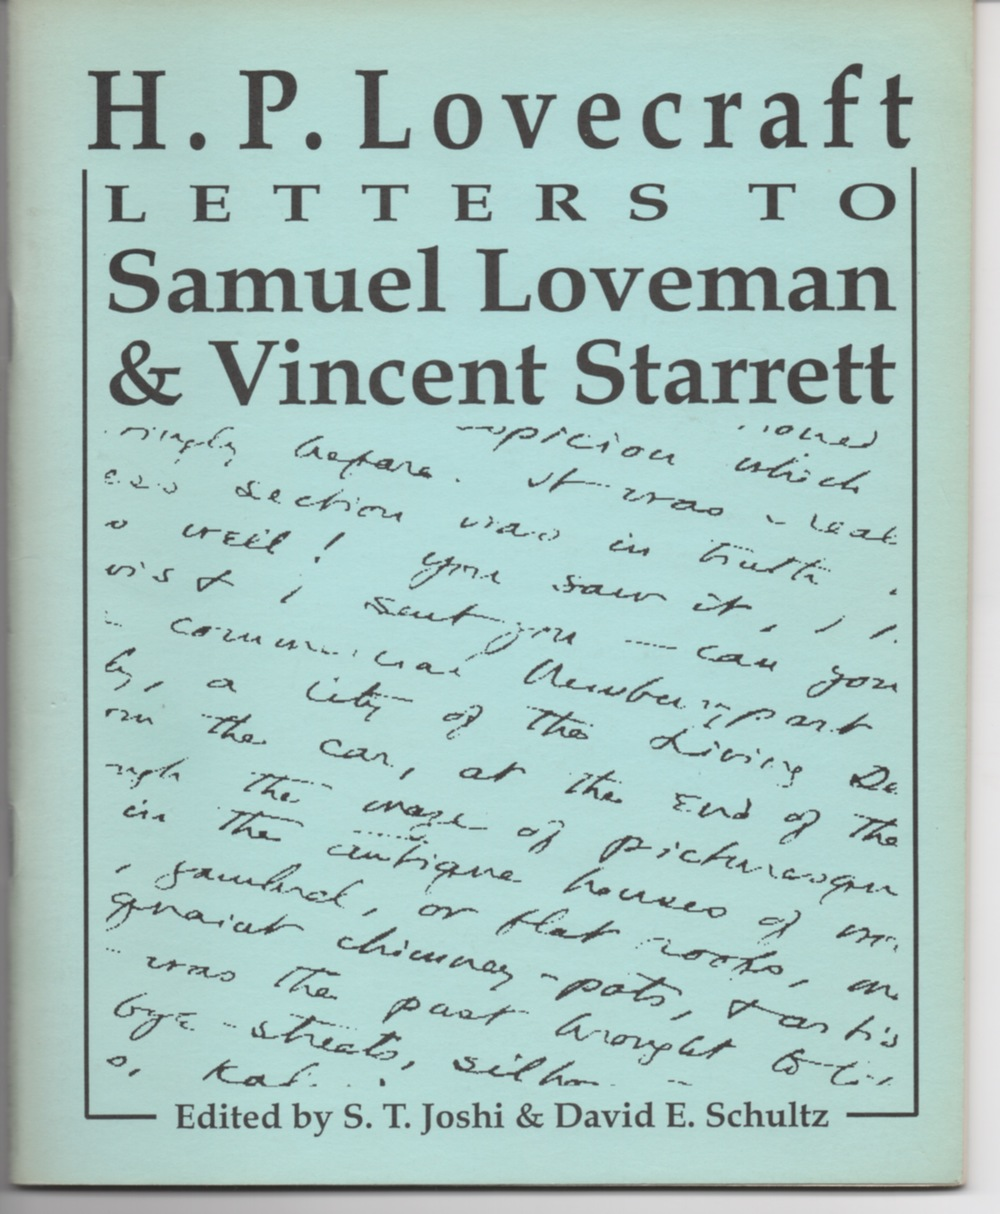 Another source of the correspondence between Starrett and Lovecrafdt is this little booklet, published by the Necronomicon Press in October 1994. Copies come up for sale regularly.